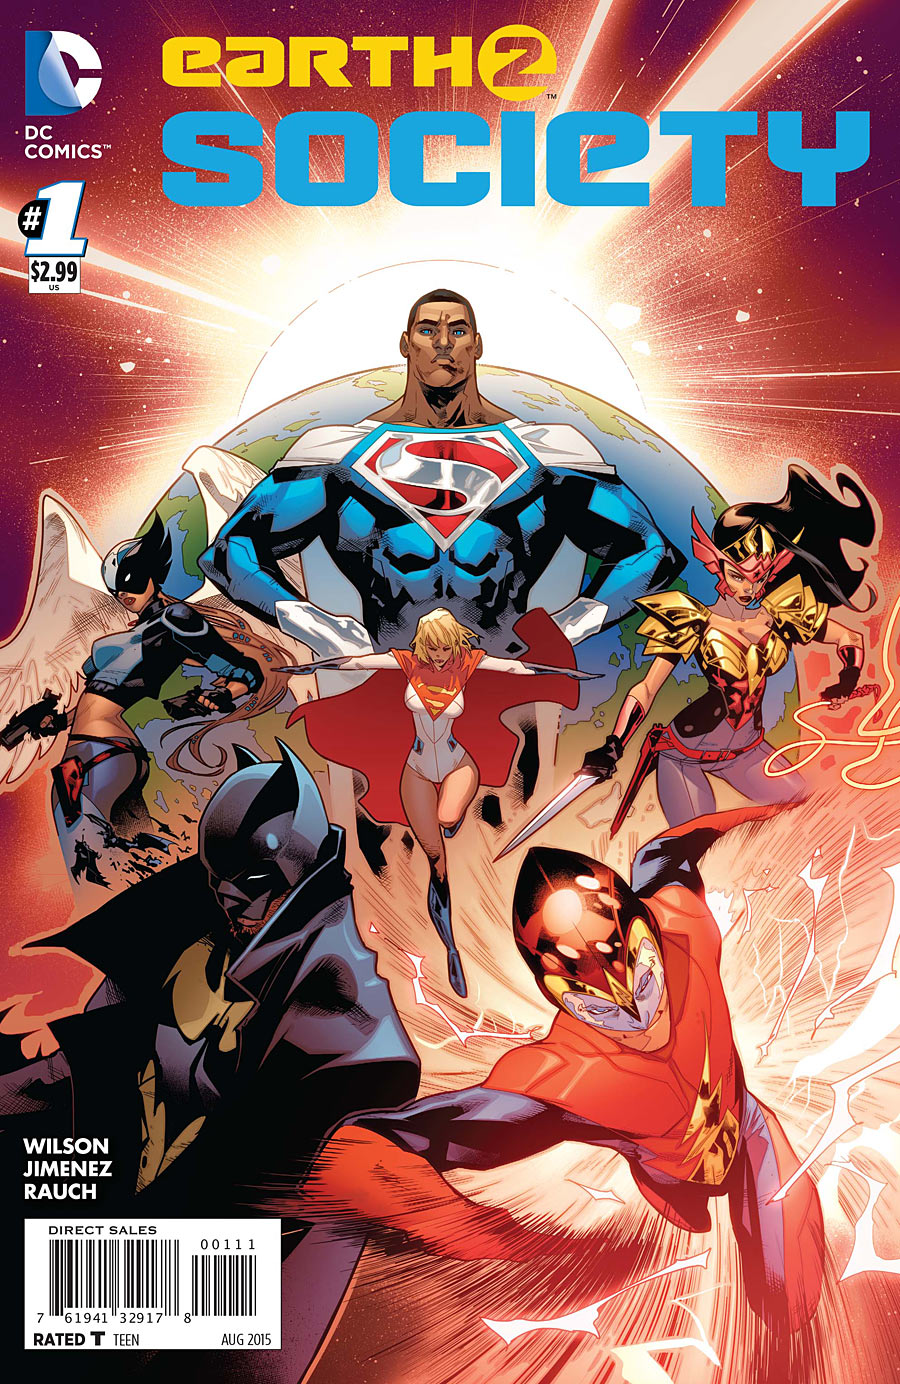 Review Earth 2 Society #1